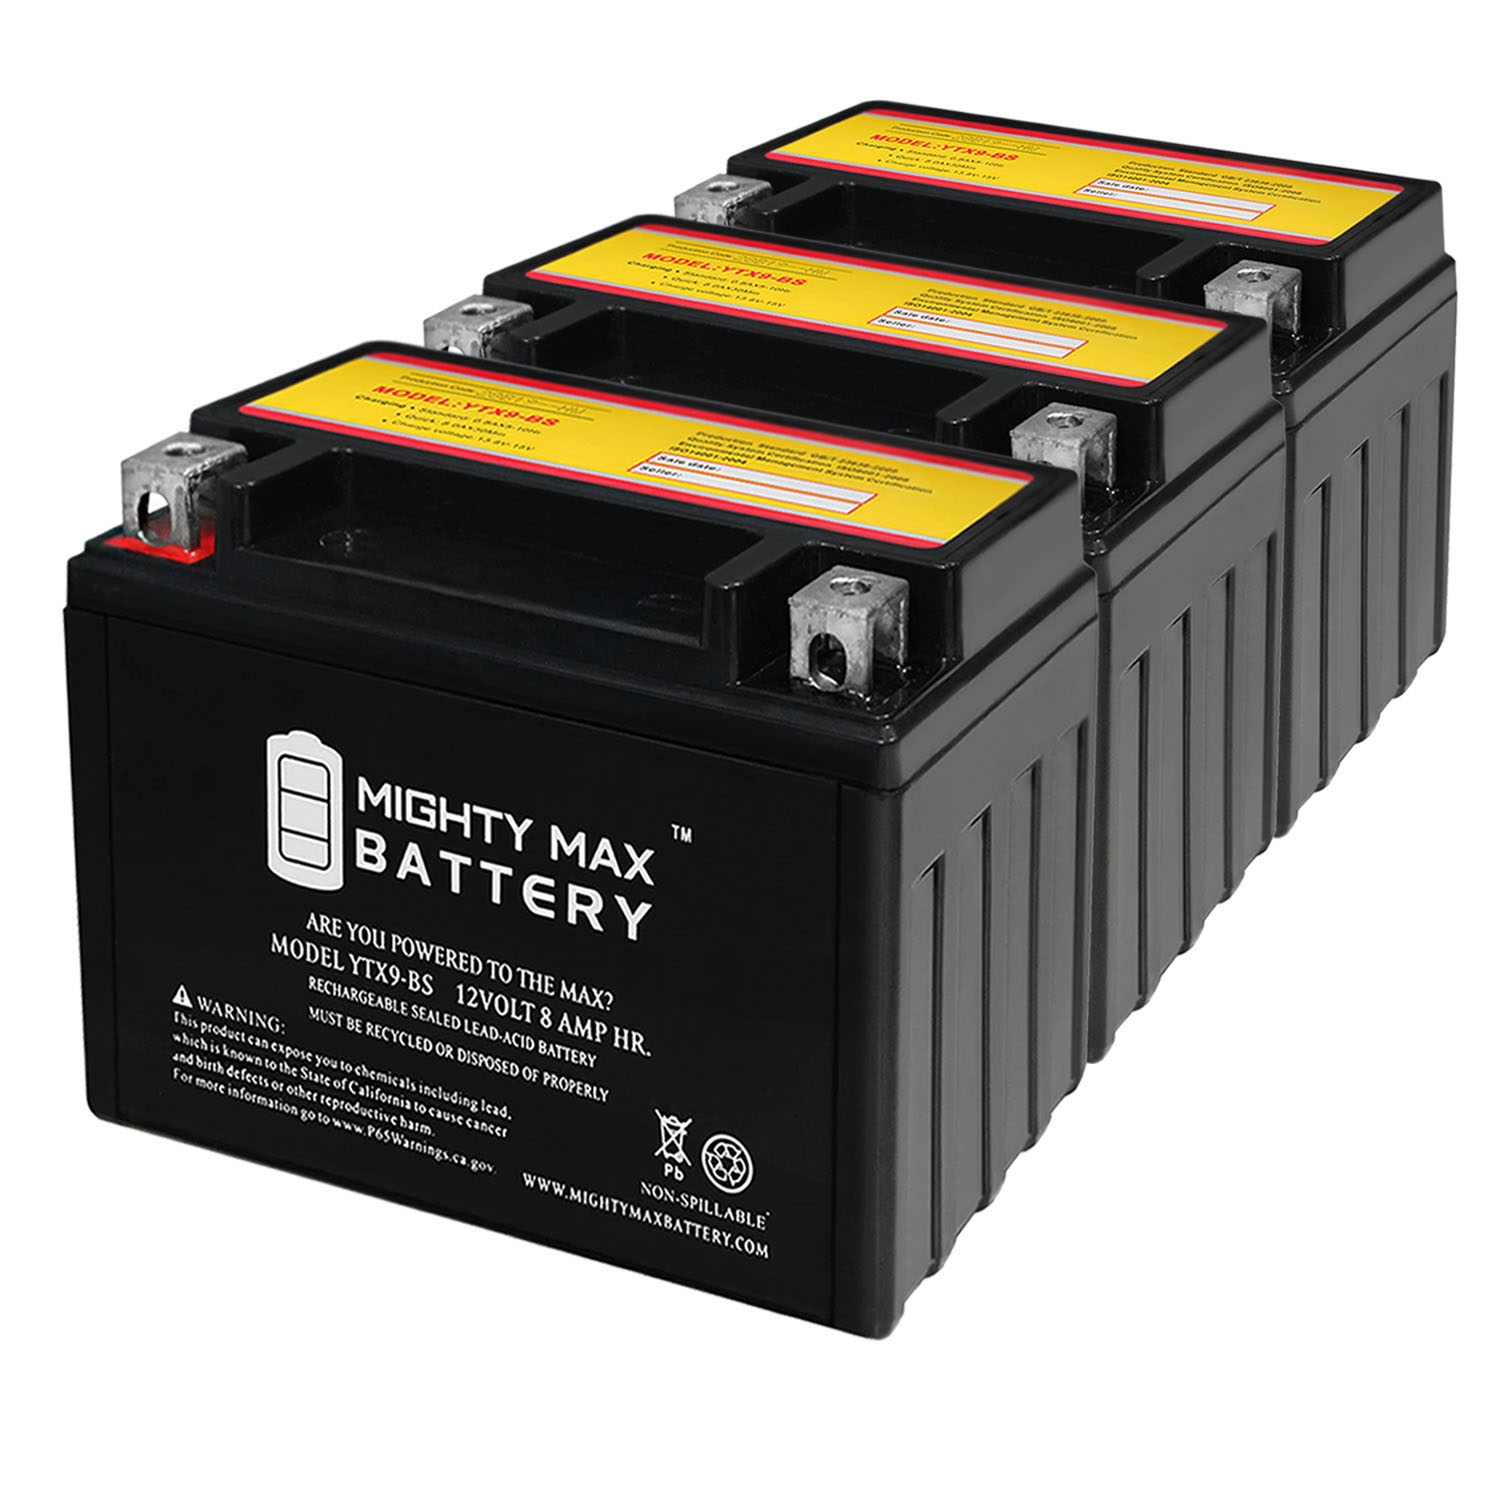 YTX9-BS 12V 8AH Replaces SLA For Power Sports Battery - 3 Pack